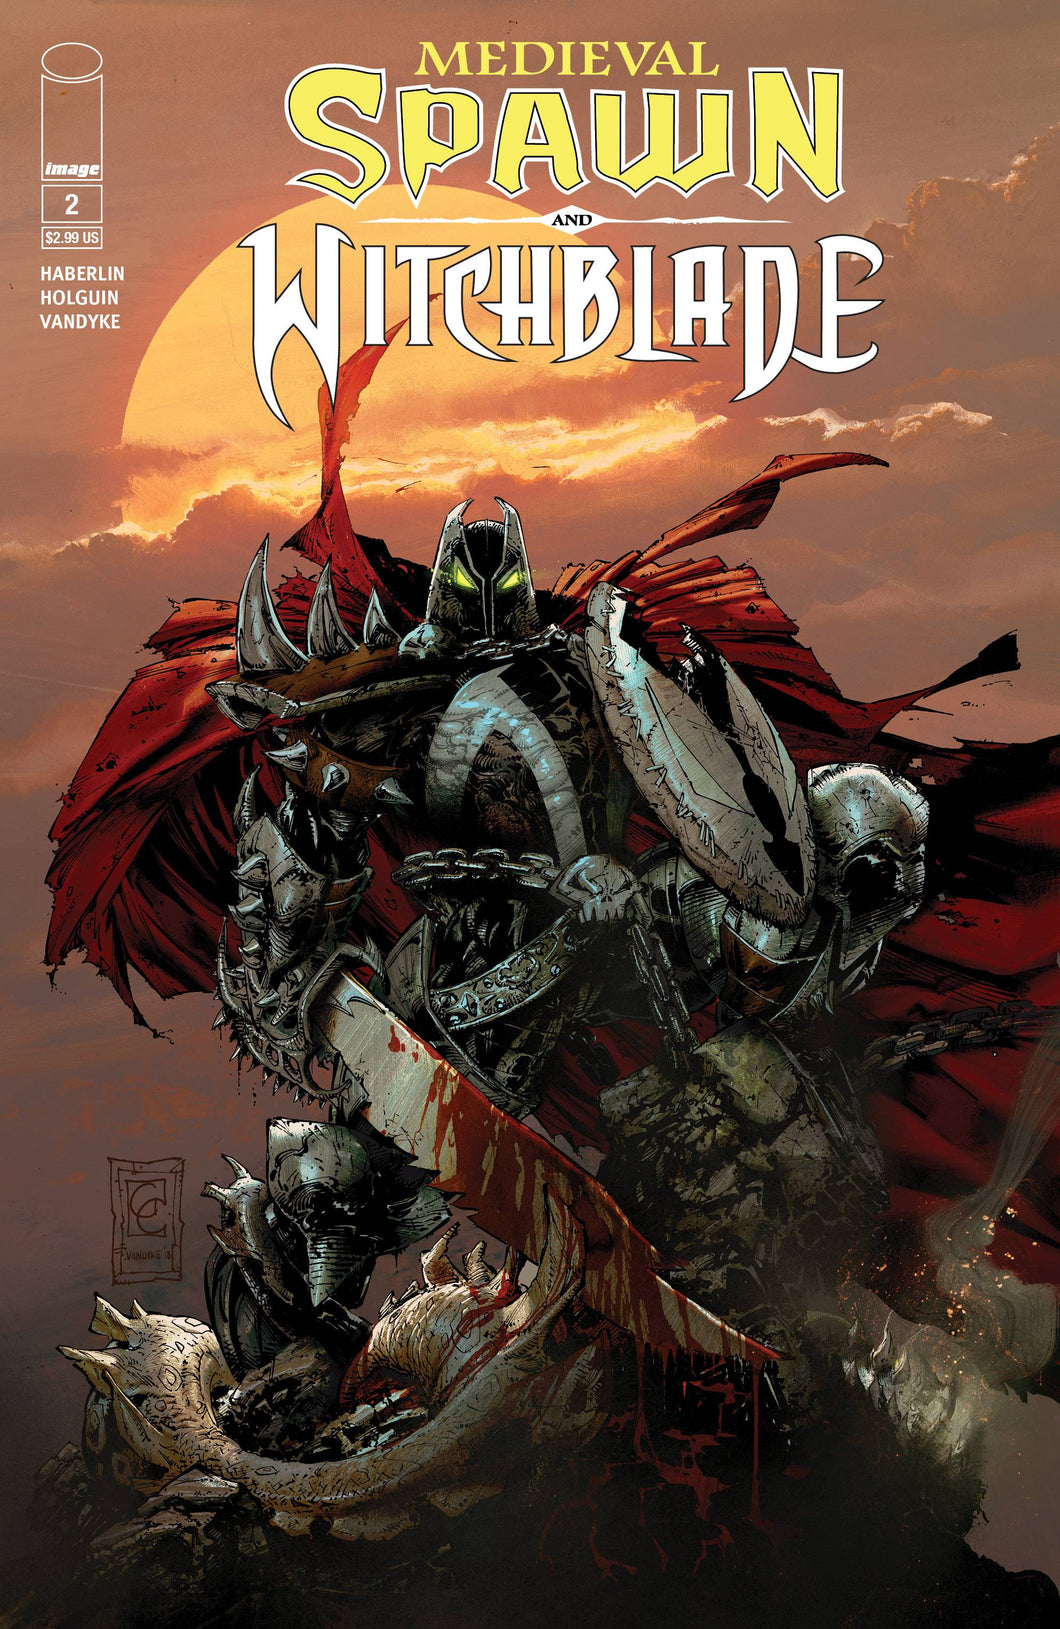 MEDIEVAL SPAWN WITCHBLADE #2 (OF 4) CVR B GREG CAPULLO 06/06